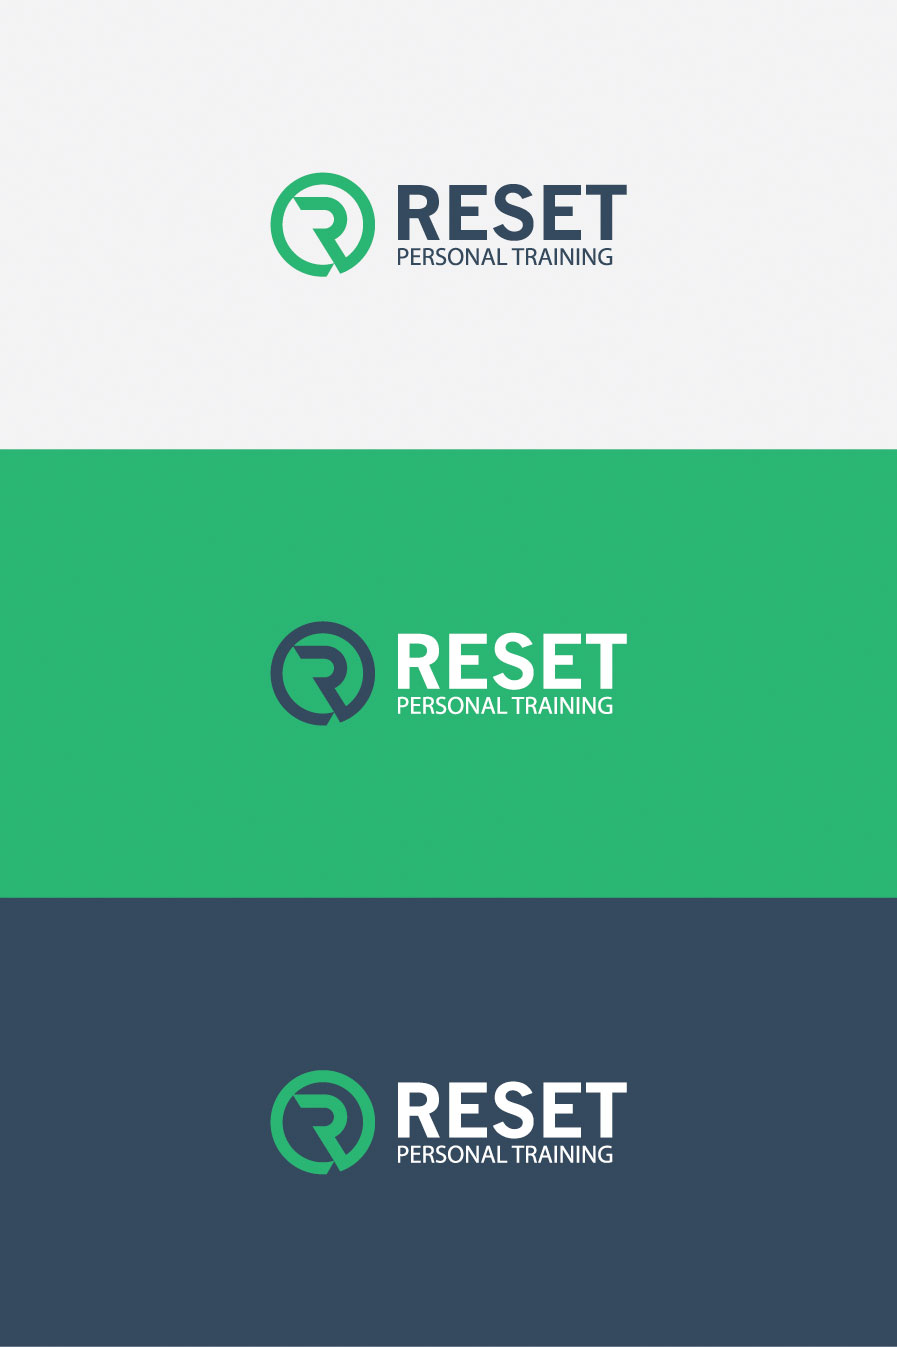 Reset-personal-training-logo-design